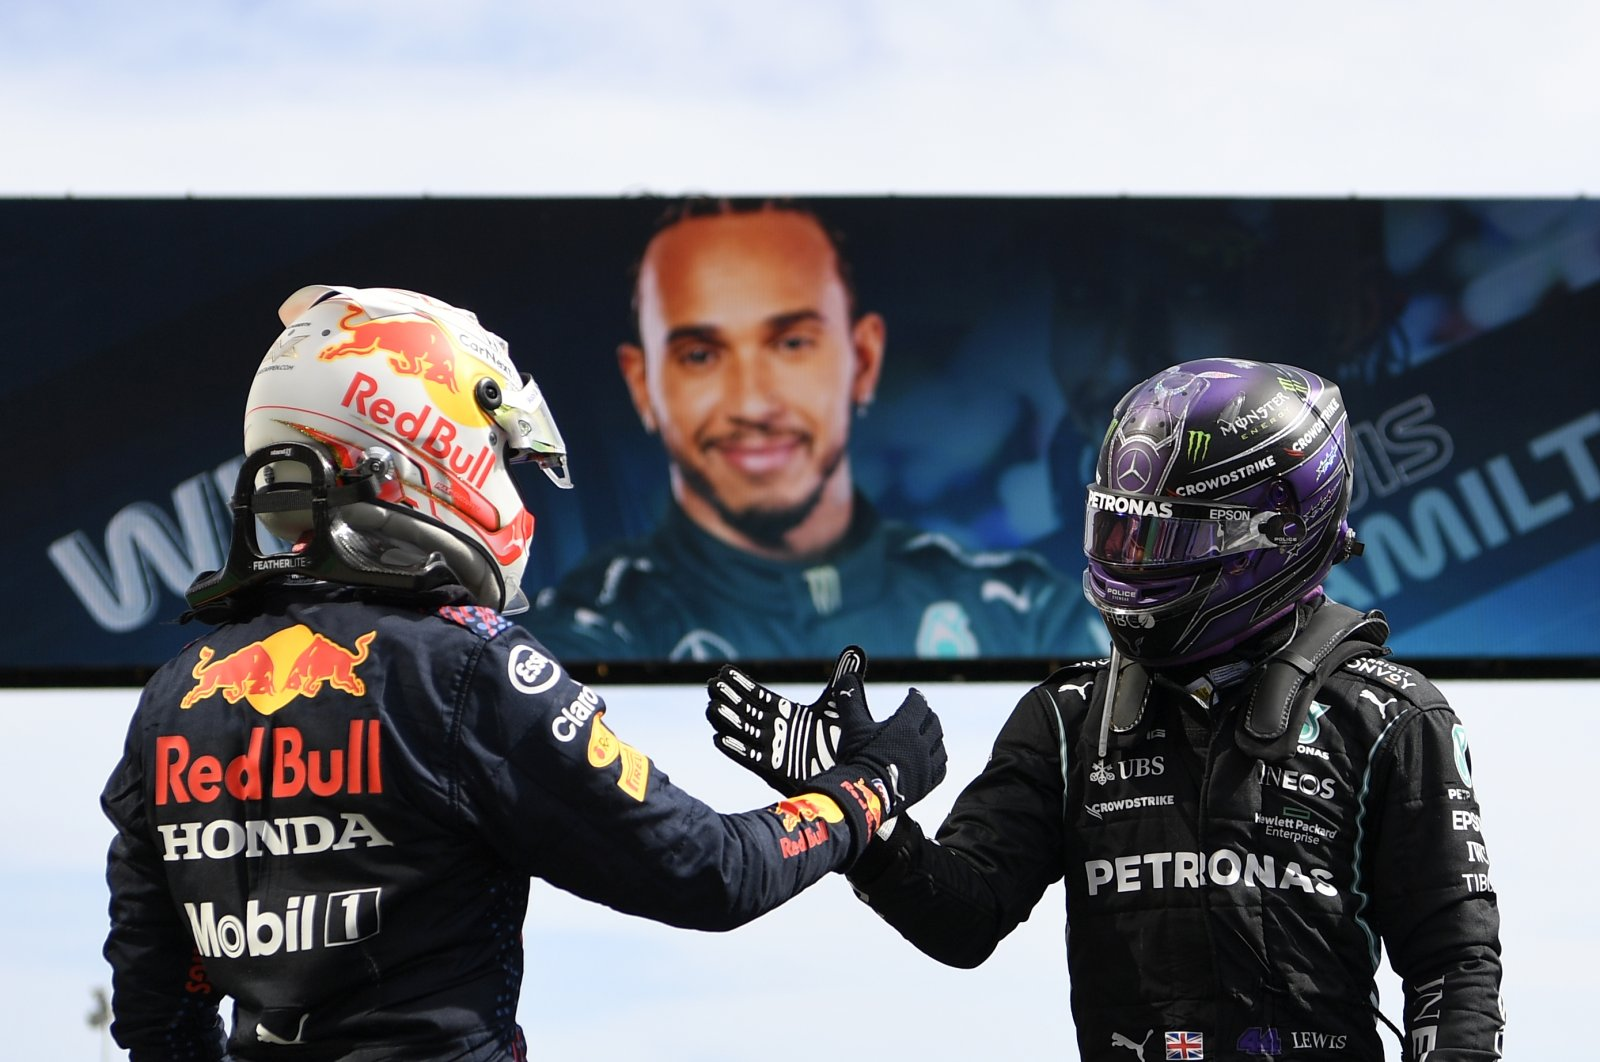 Mercedes driver Lewis Hamilton of Britain (R) shakes hands with Red Bull's Max Verstappen after winning the Portugal Formula One Grand Prix at the Algarve International Circuit near Portimao, Portugal, May 2, 2021. (AP Photo)